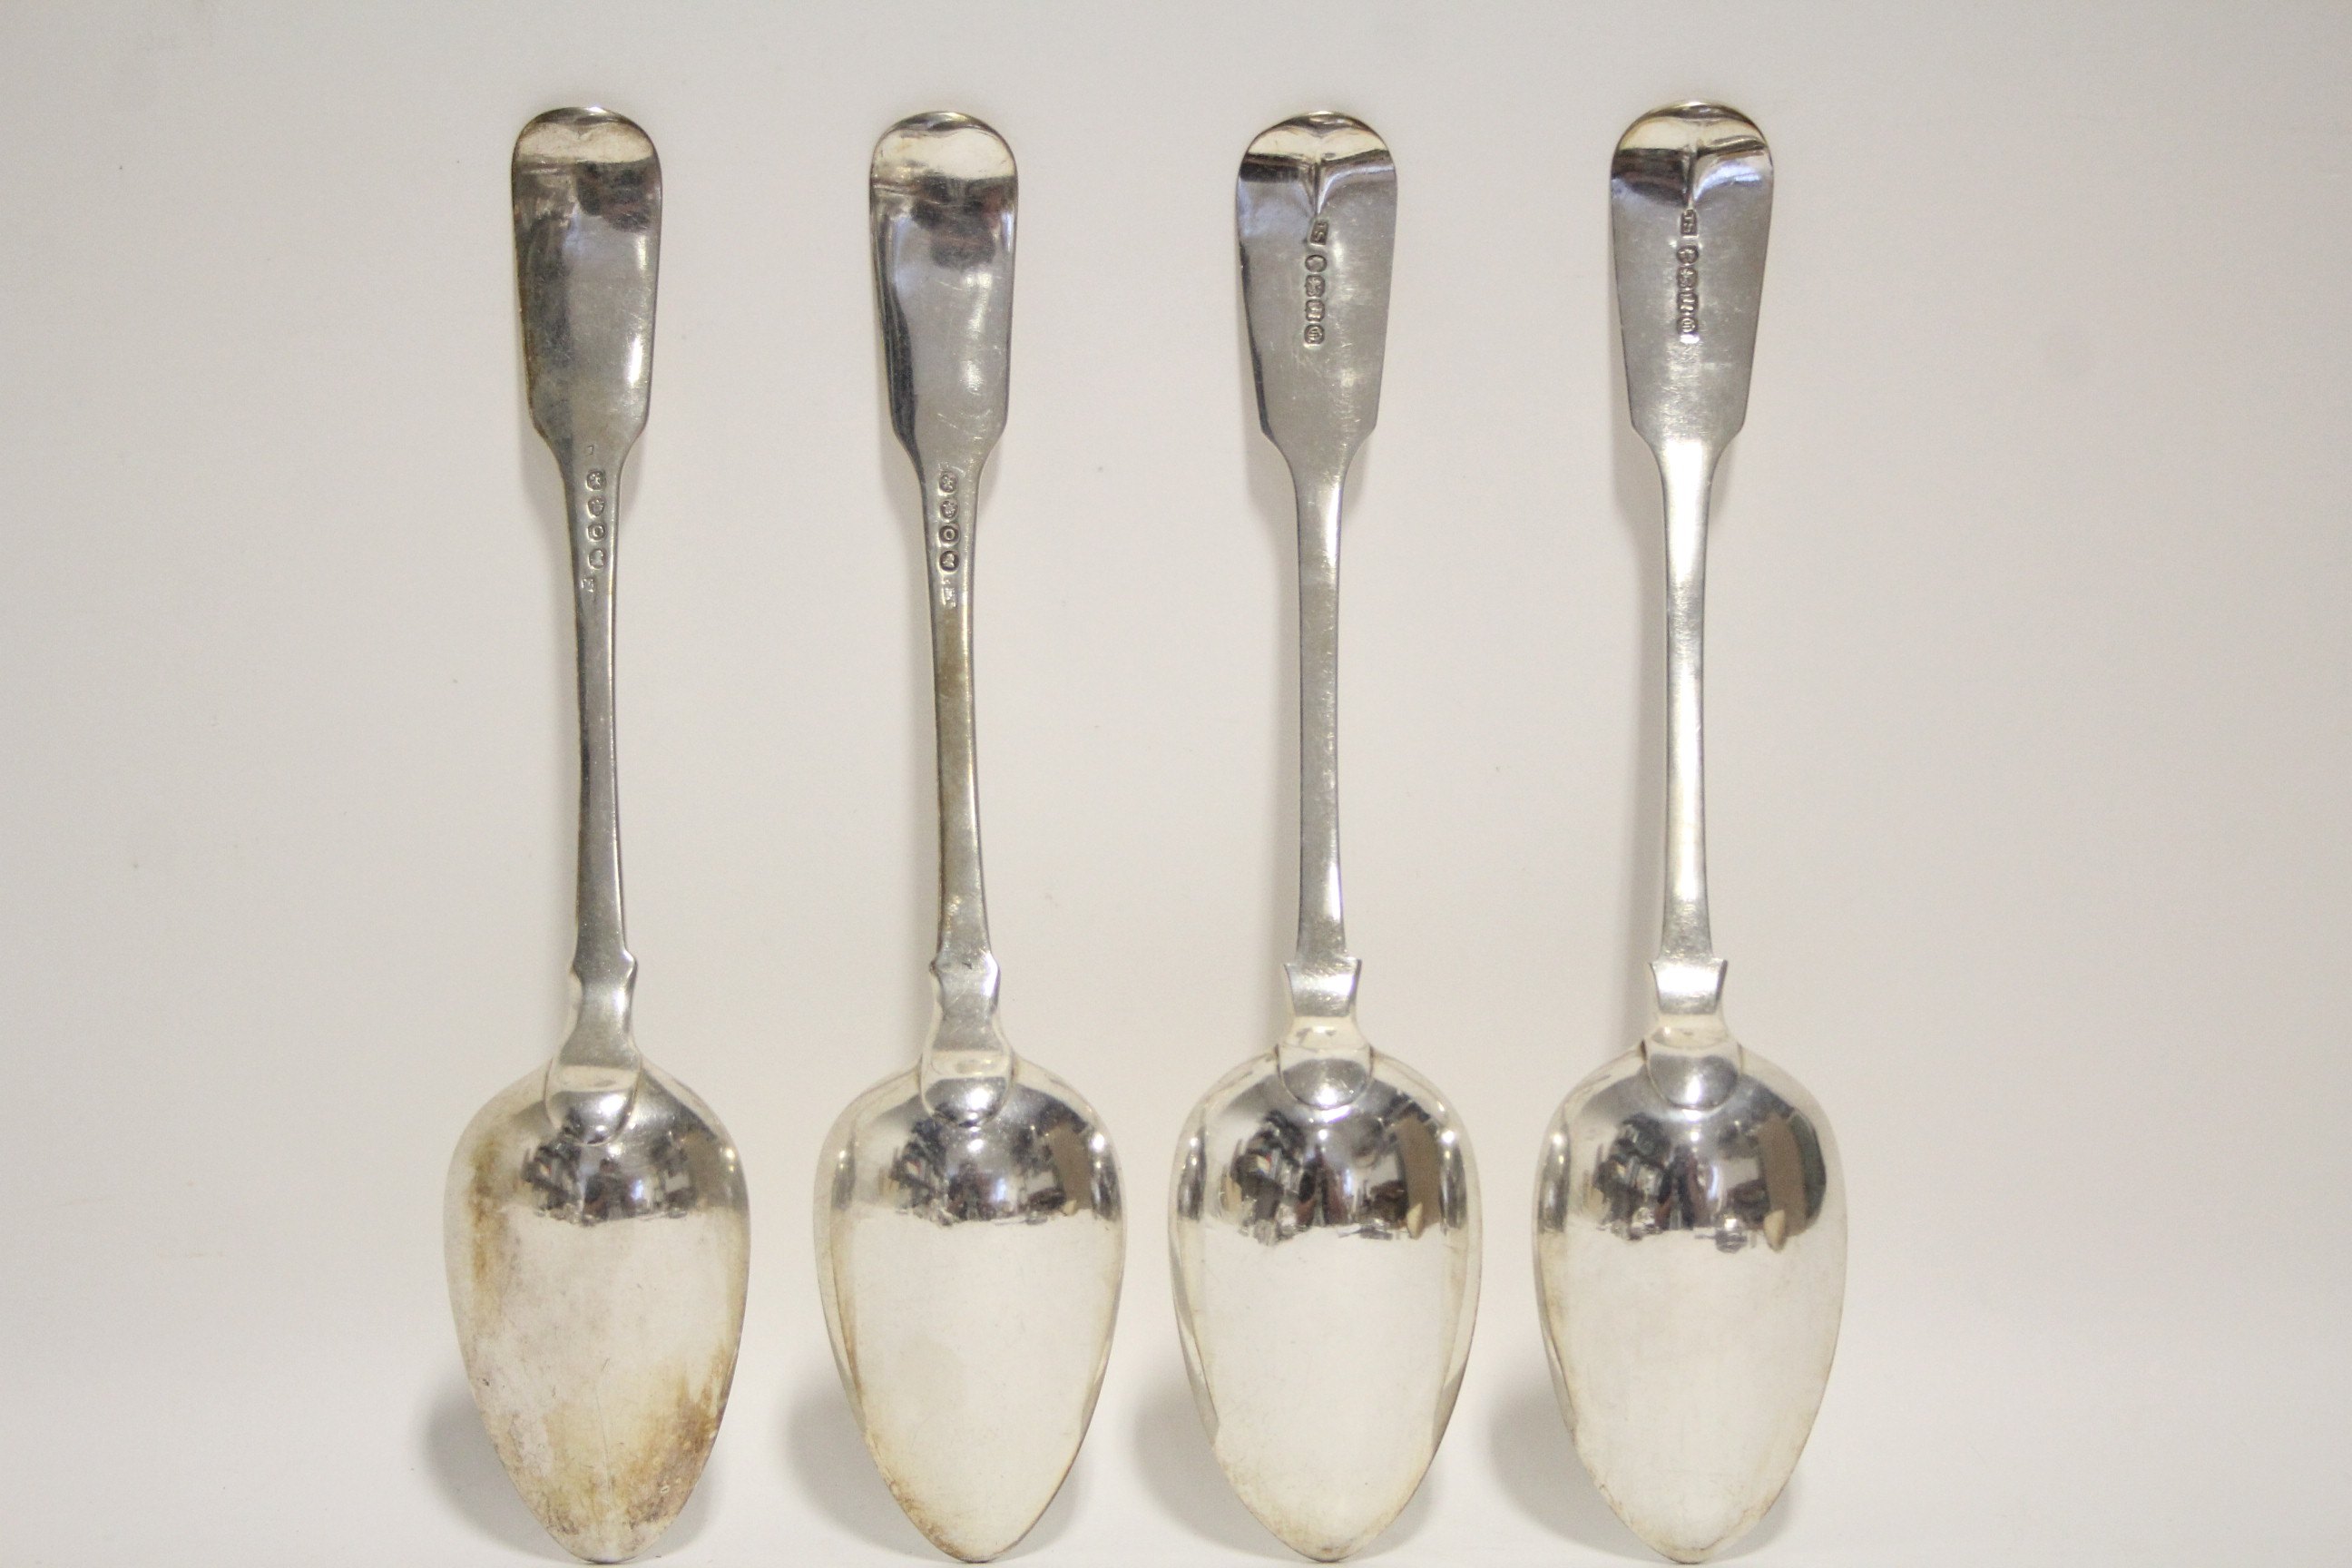 Lot 23 - A pair of George III Fiddle pattern table spoons, London 1809 by Solomon Hougham (probably); & a